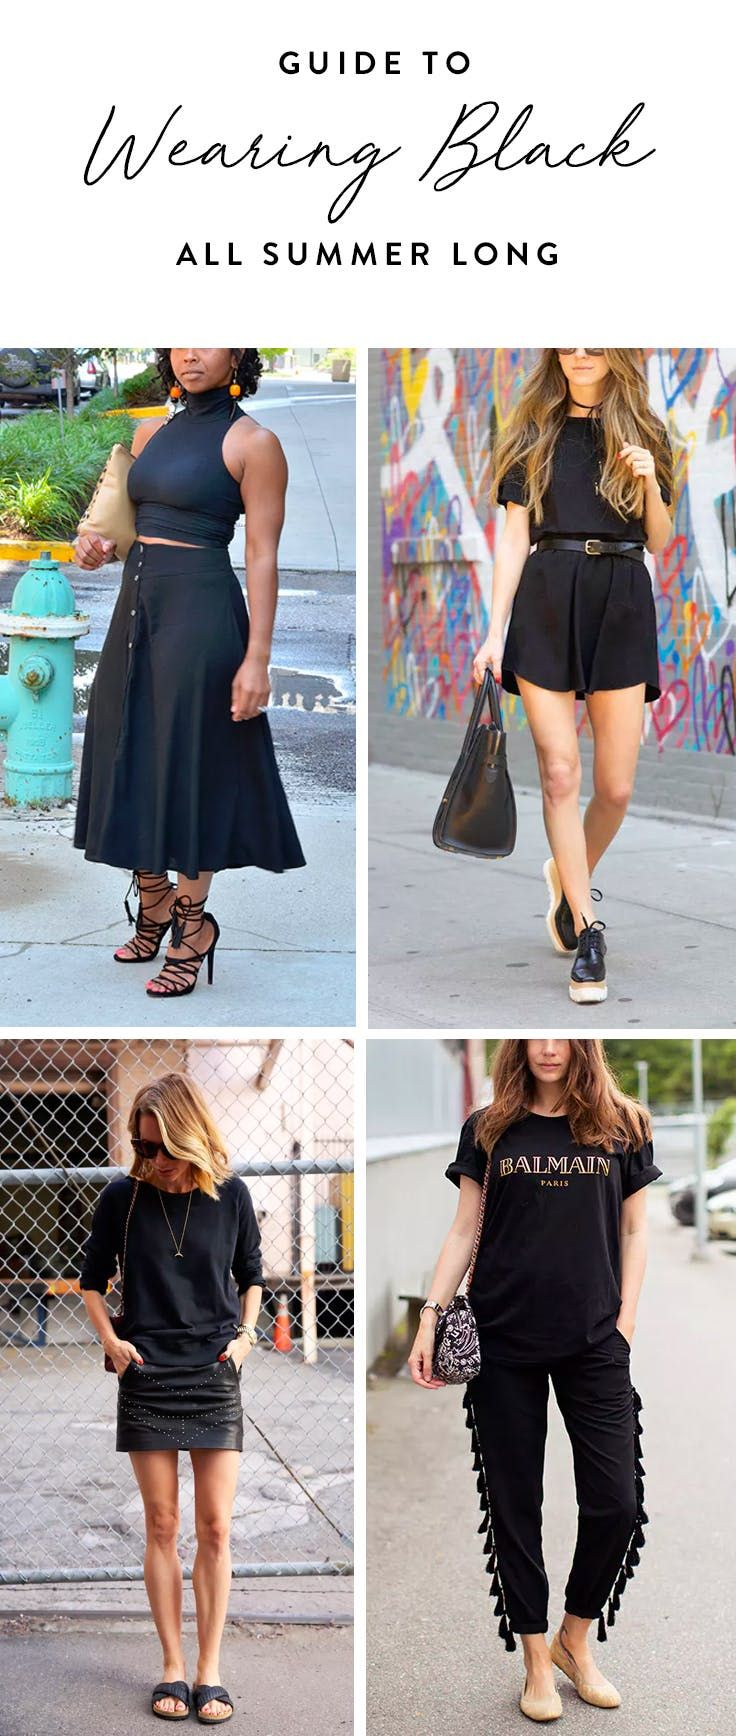 7 Styling Tips So You Can Keep Wearing All Black This Summer via @PureWow